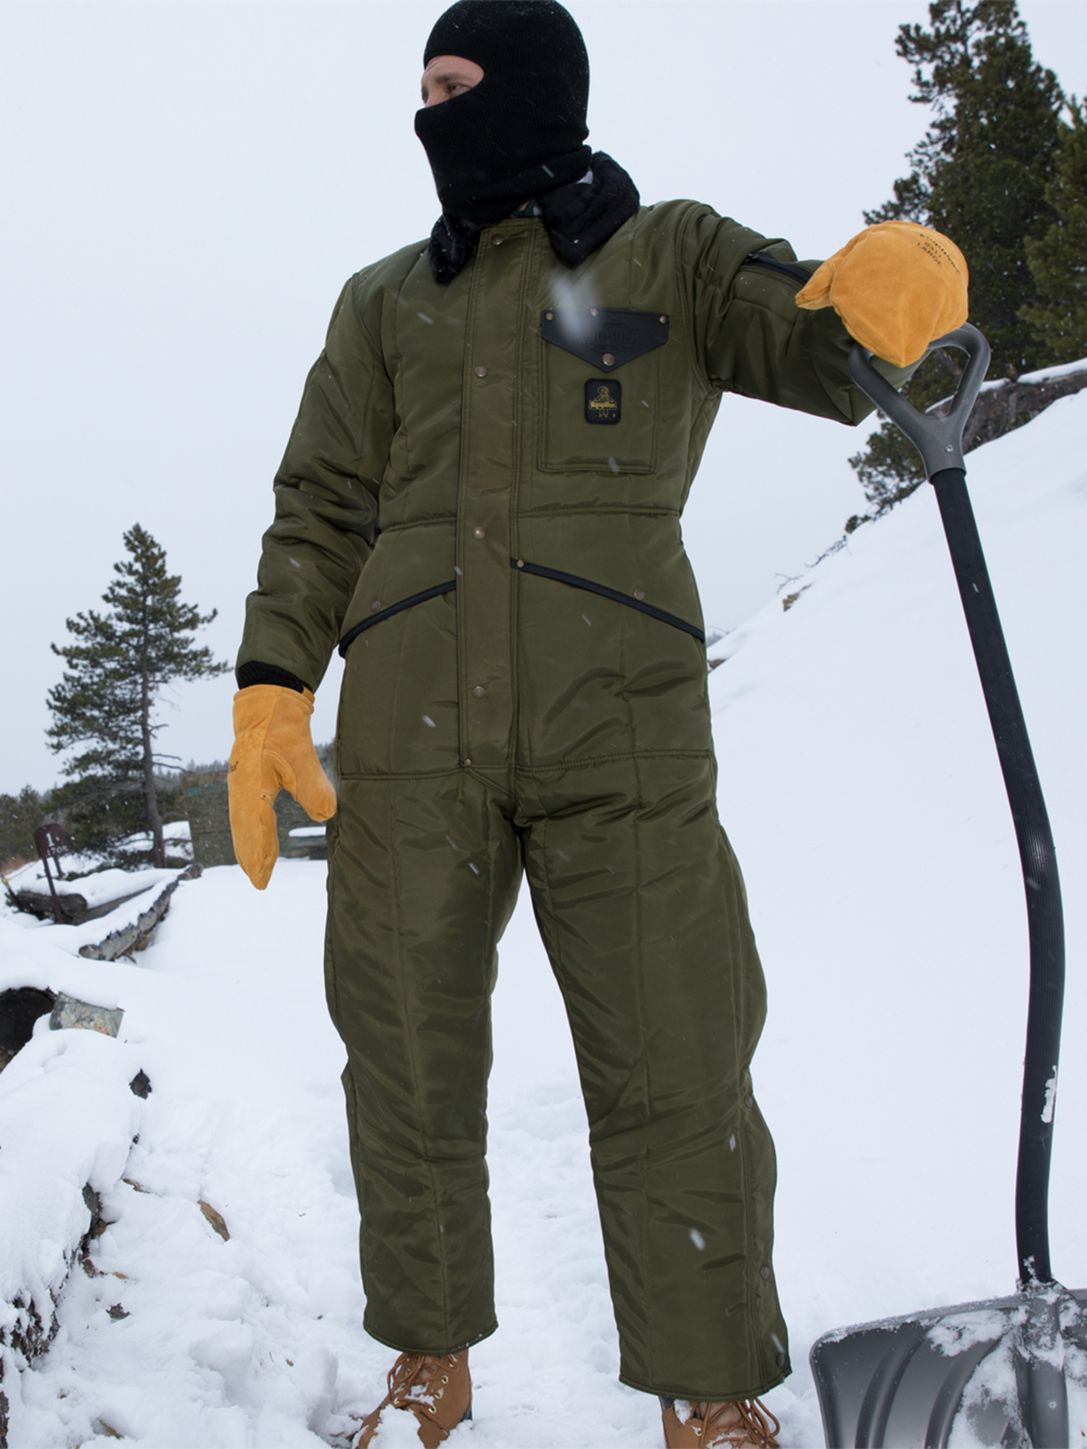 RefrigiWear 0344 Iron-Tuff Insulated Work Coverall Sage Example